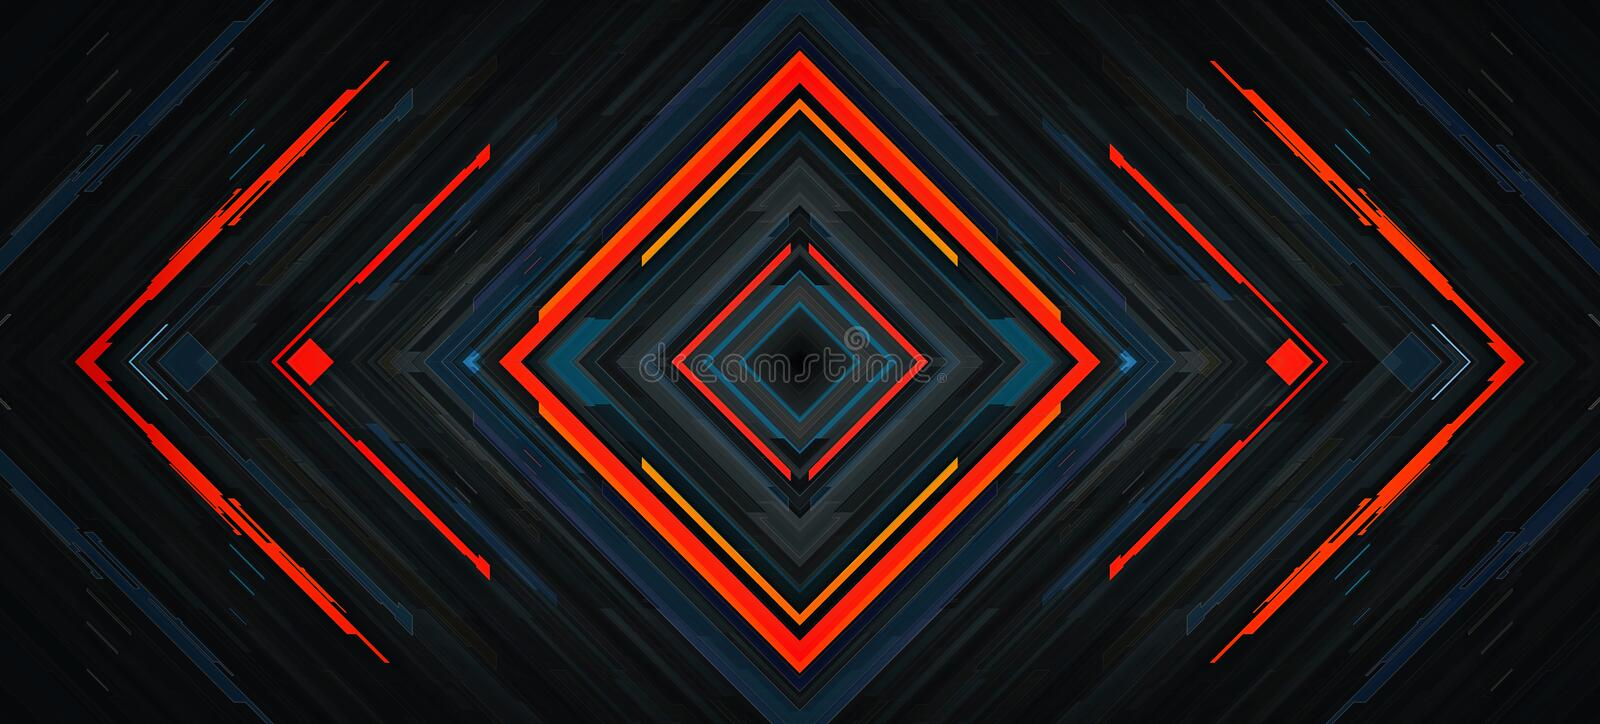 Dark abstract technology background stock photo